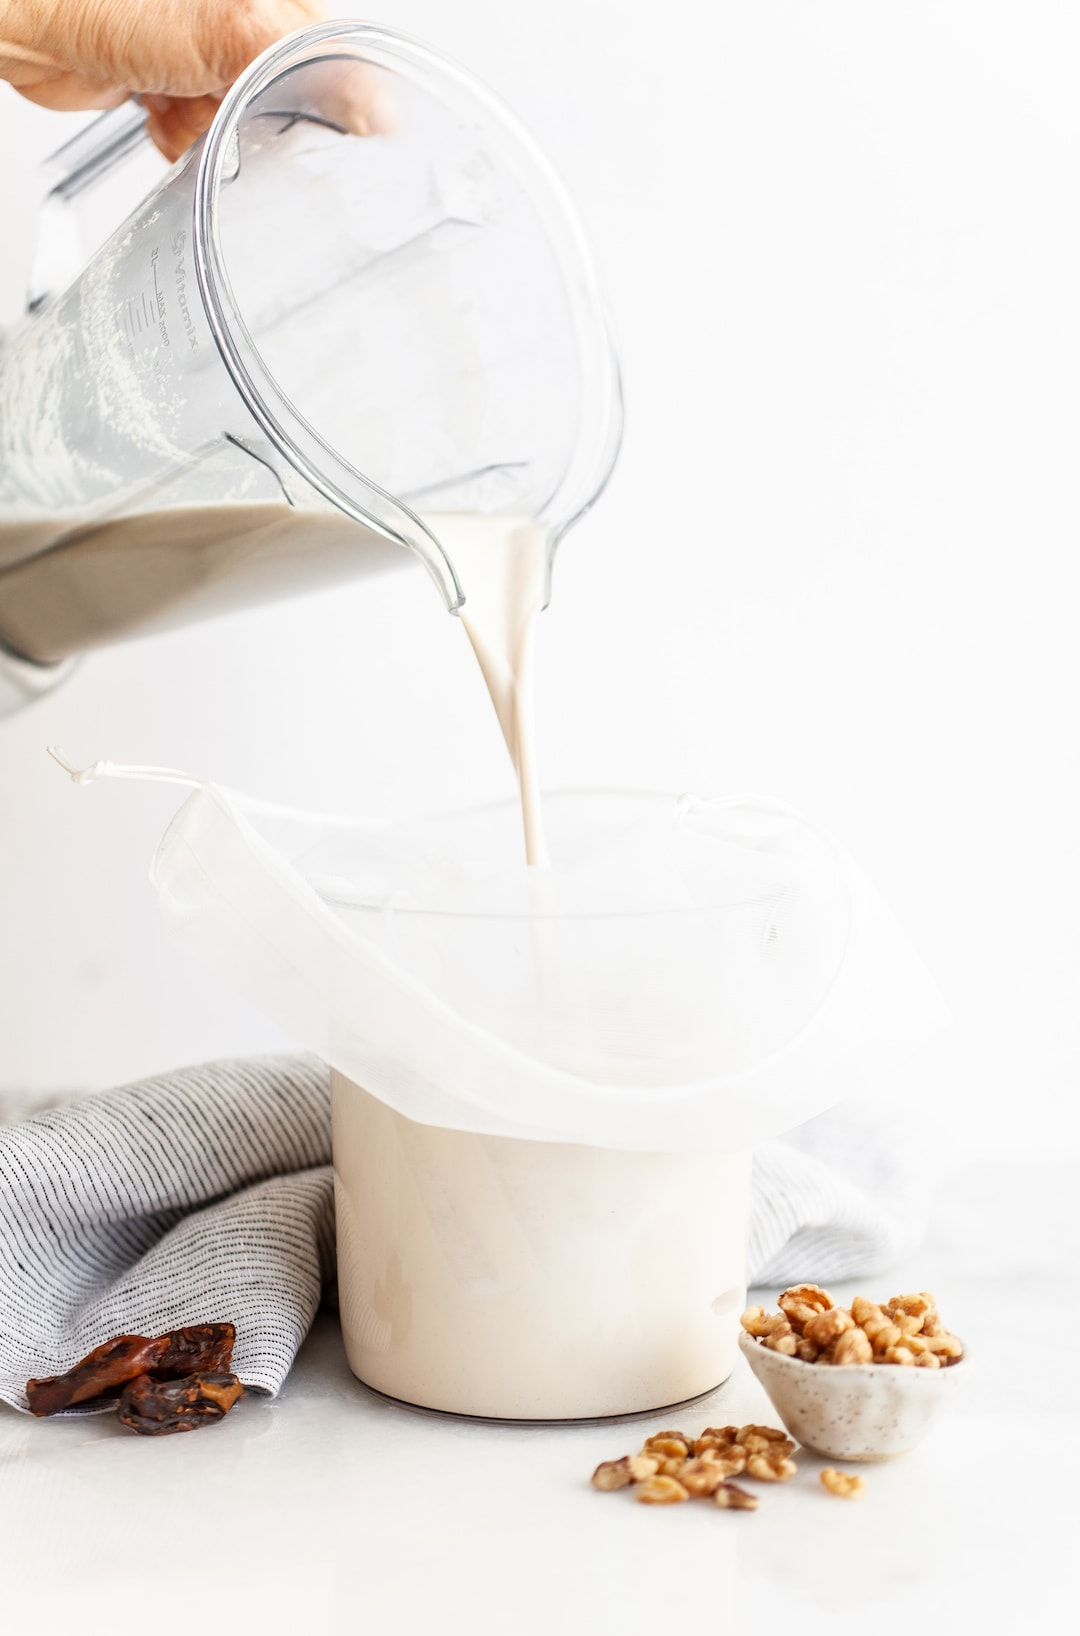 The Easiest Vitamix Walnut Milk (2 Ways!) - in a few simple steps!